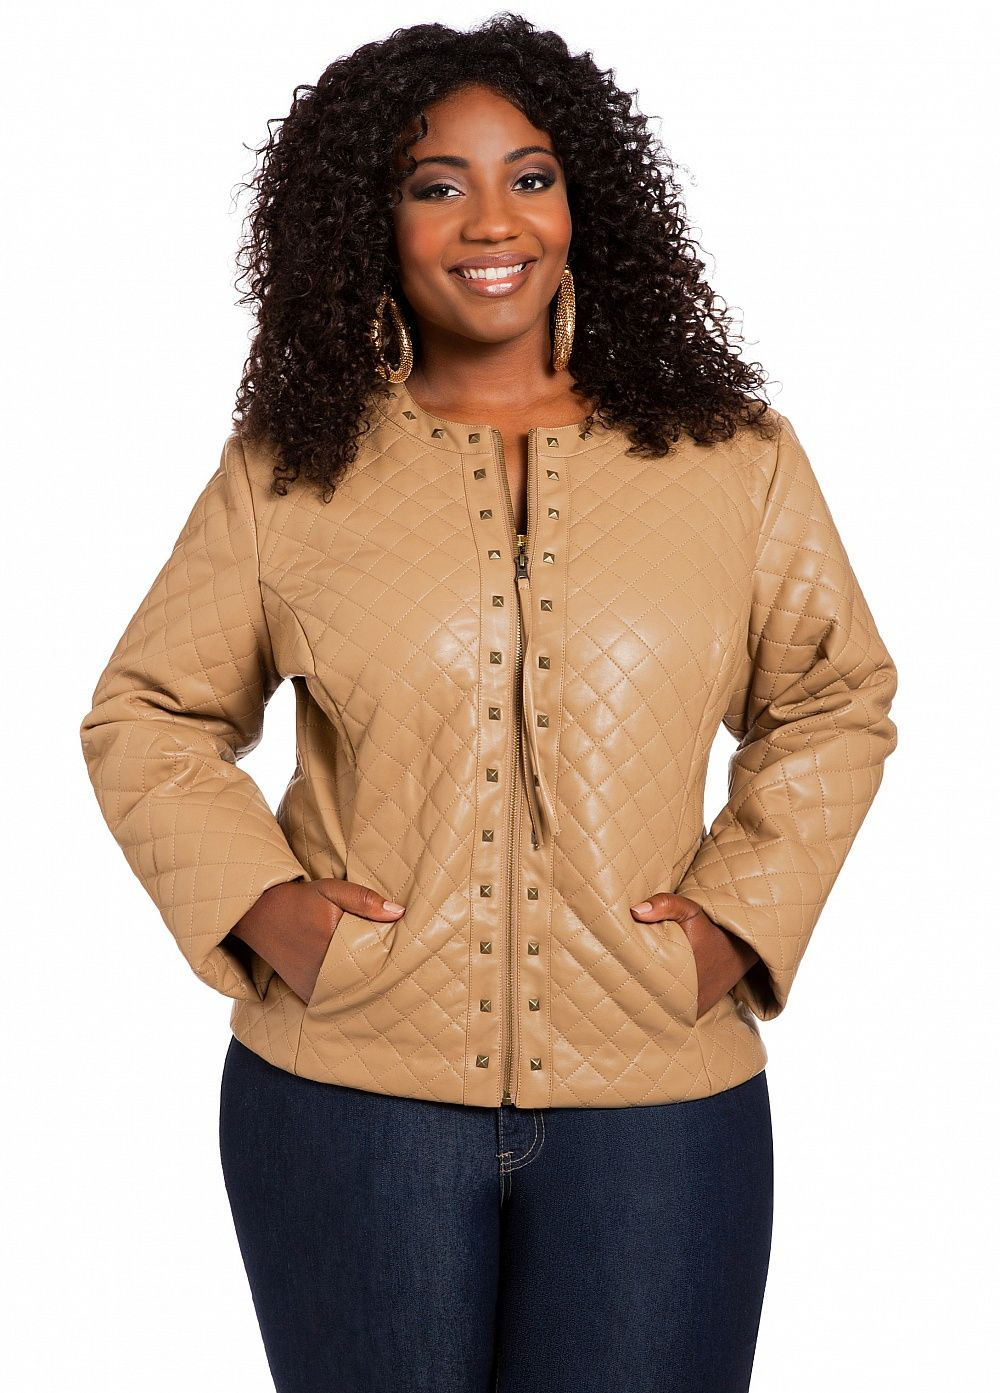 Womens Plus Size Coats And Jackets Plus Size Outerwear Plus Size Coats Plus Size Outfits [ 1393 x 1000 Pixel ]